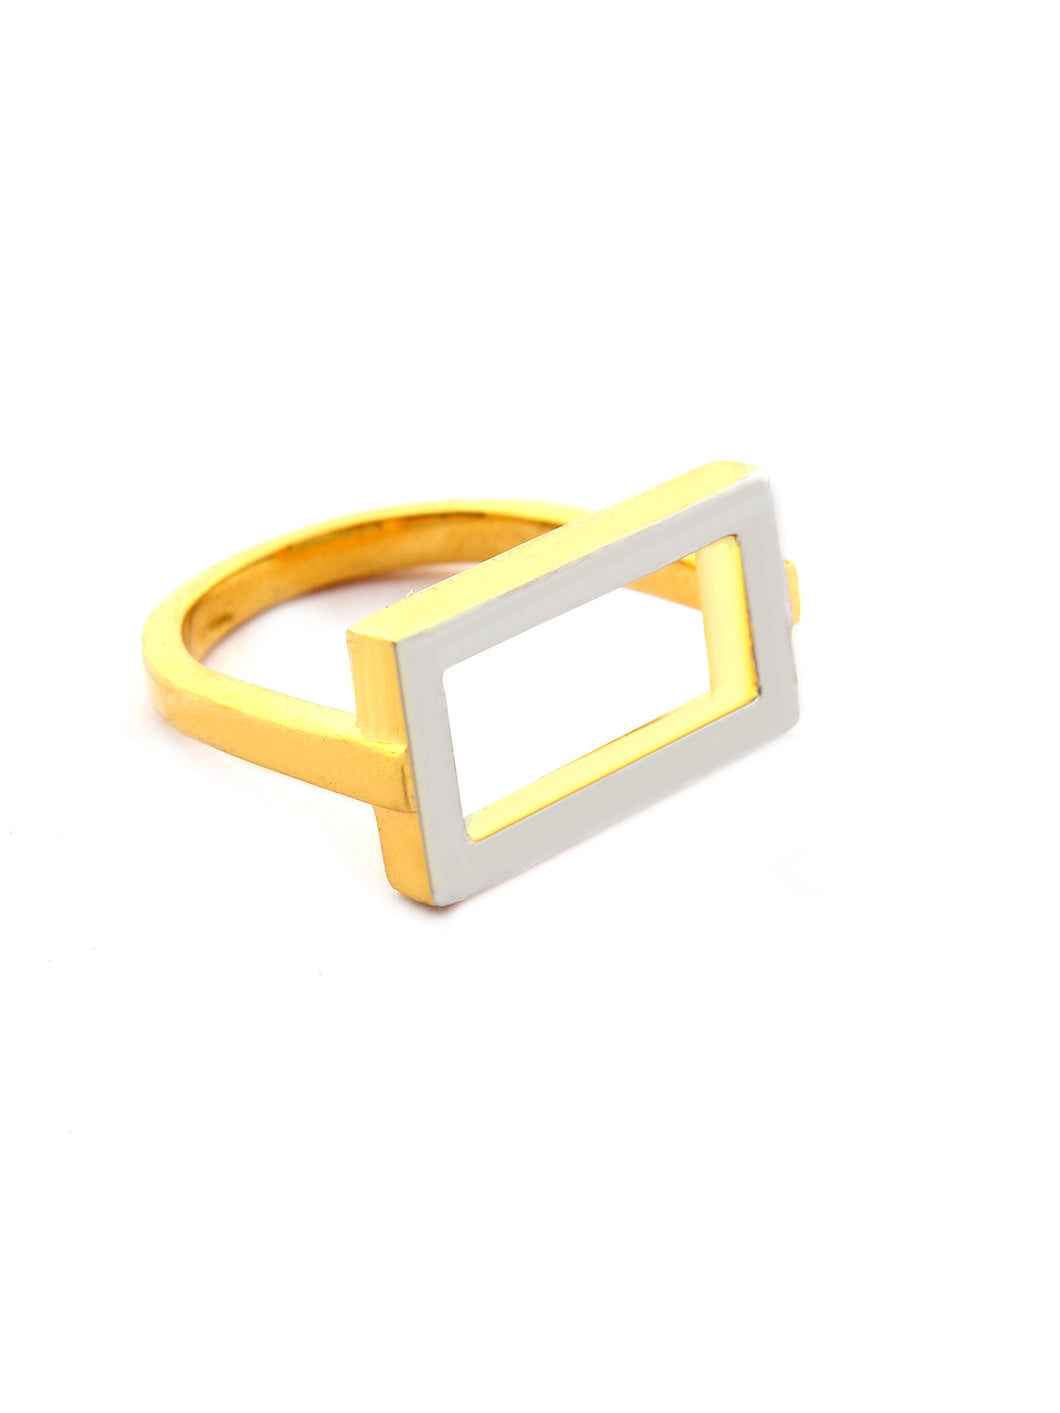 LOUPE ELLIPSE PLAIN FASHION JEWELLERY RING Collection LEL17BRG03, RING, Loupe, Loupe India - Loupe India